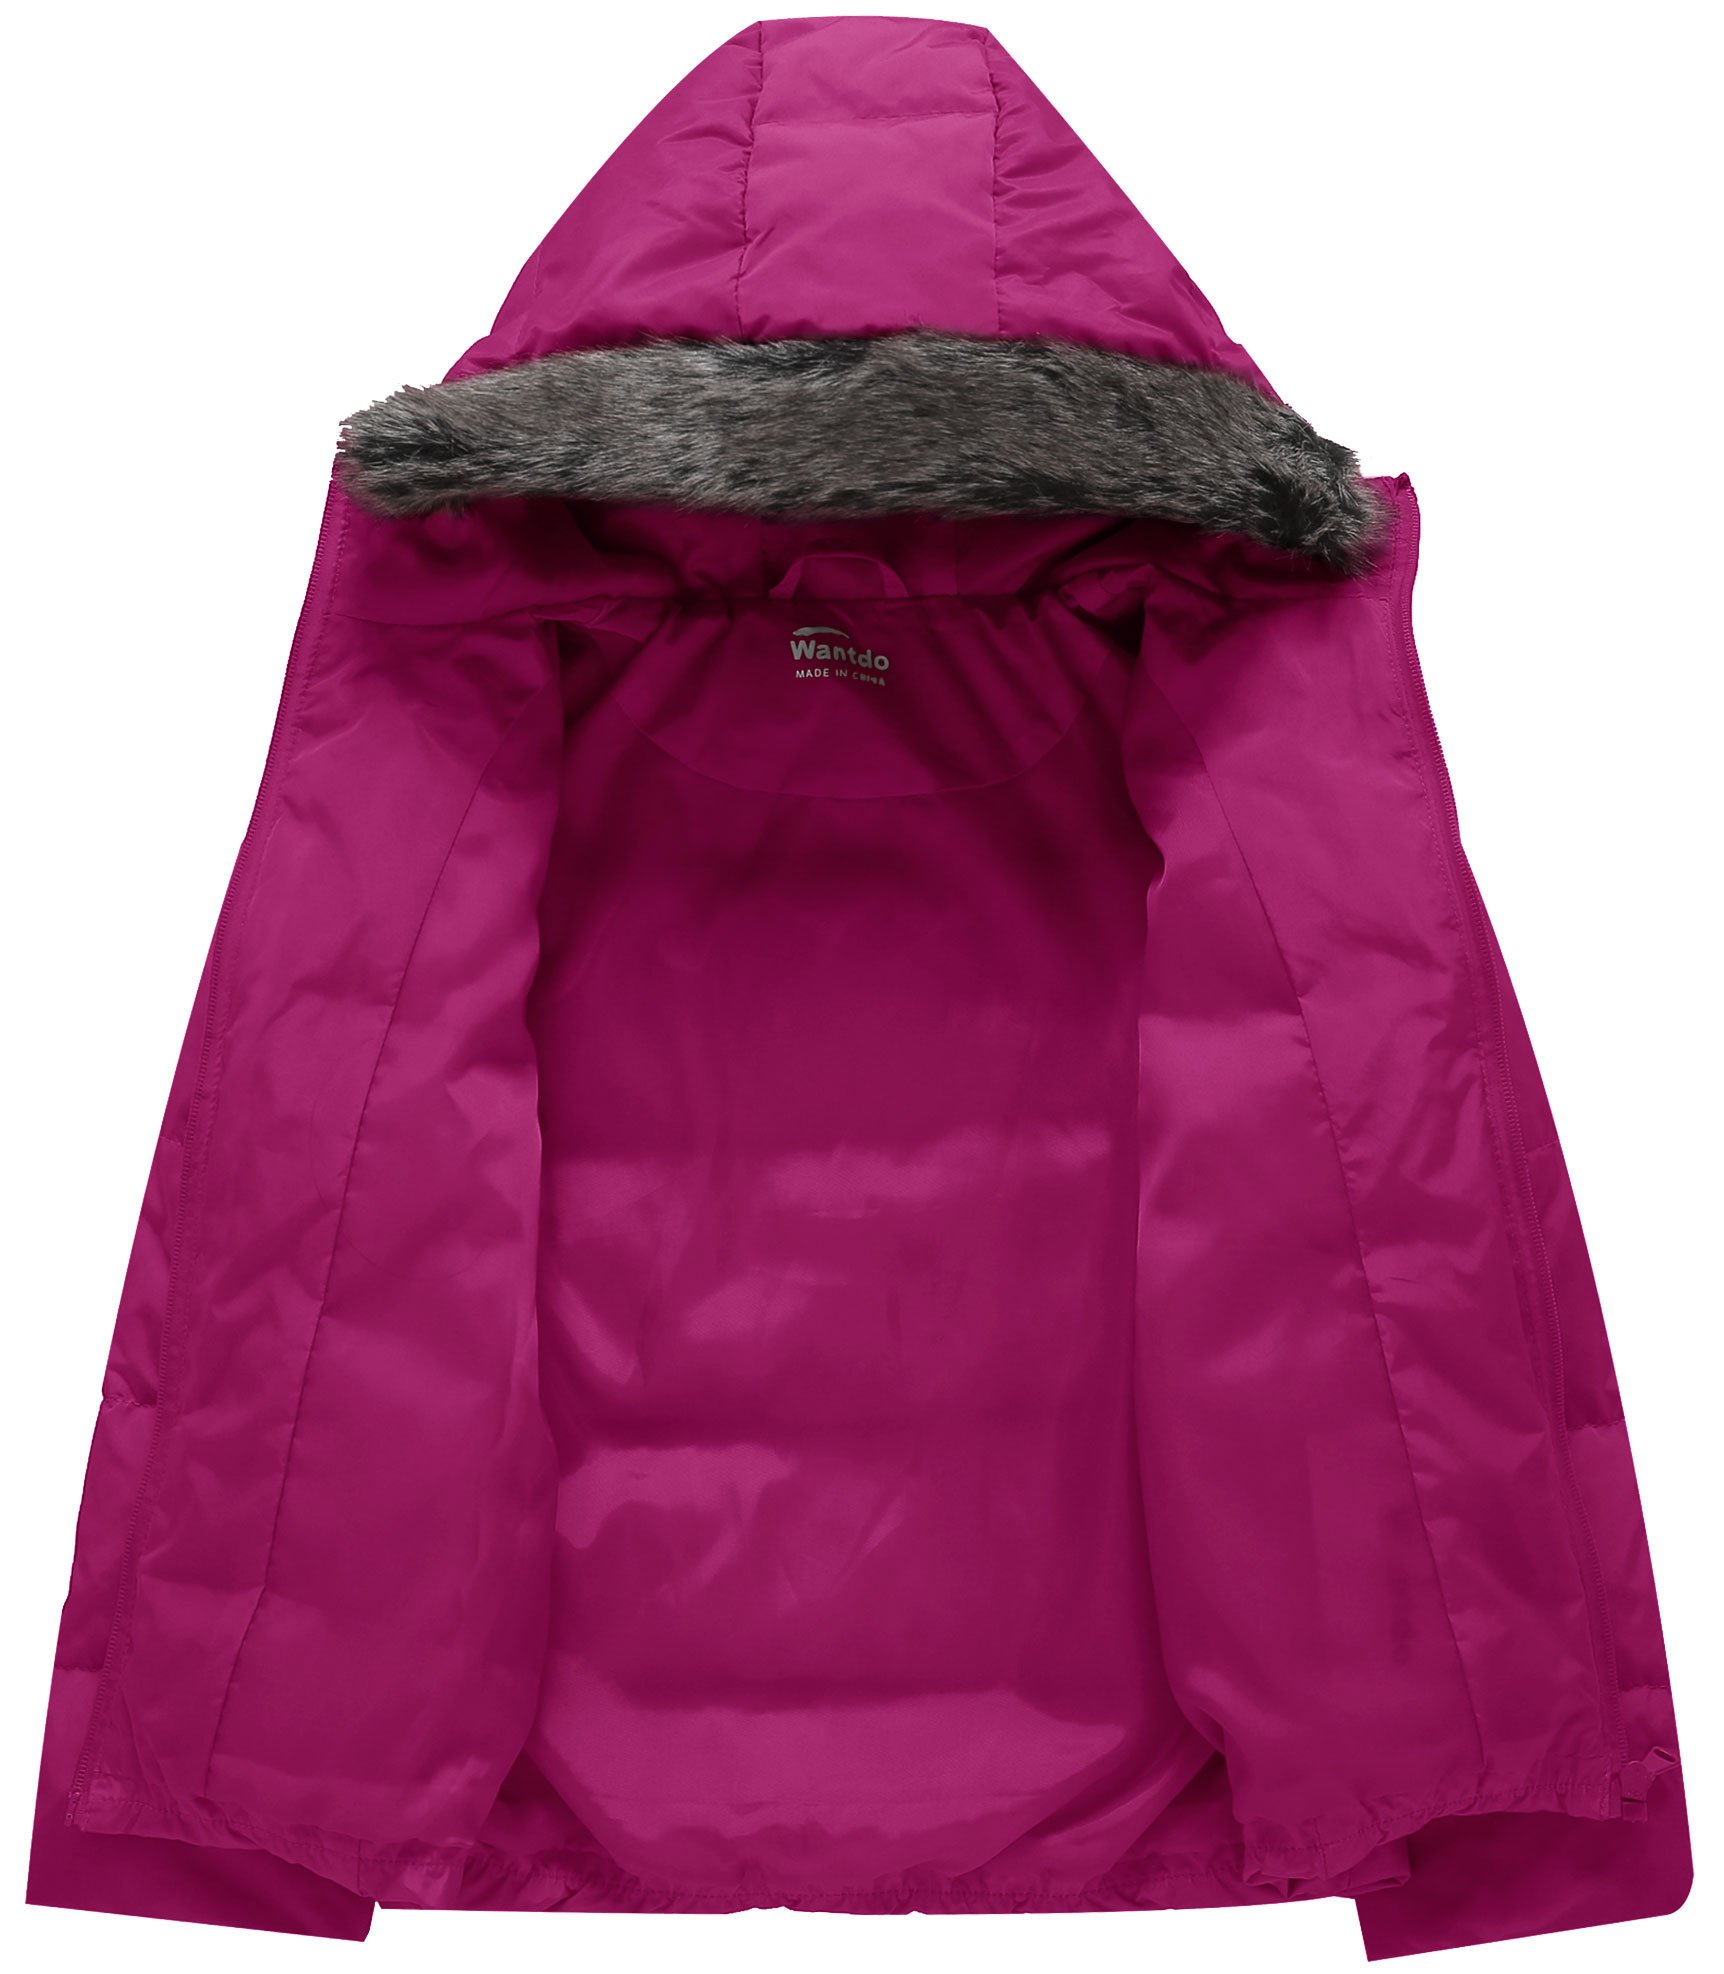 Wantdo Girl's Ultra Light Down Jacket Windproof Hoodies Outwear Short Parka for Camping(Rose Red, 4/5) by Wantdo (Image #3)